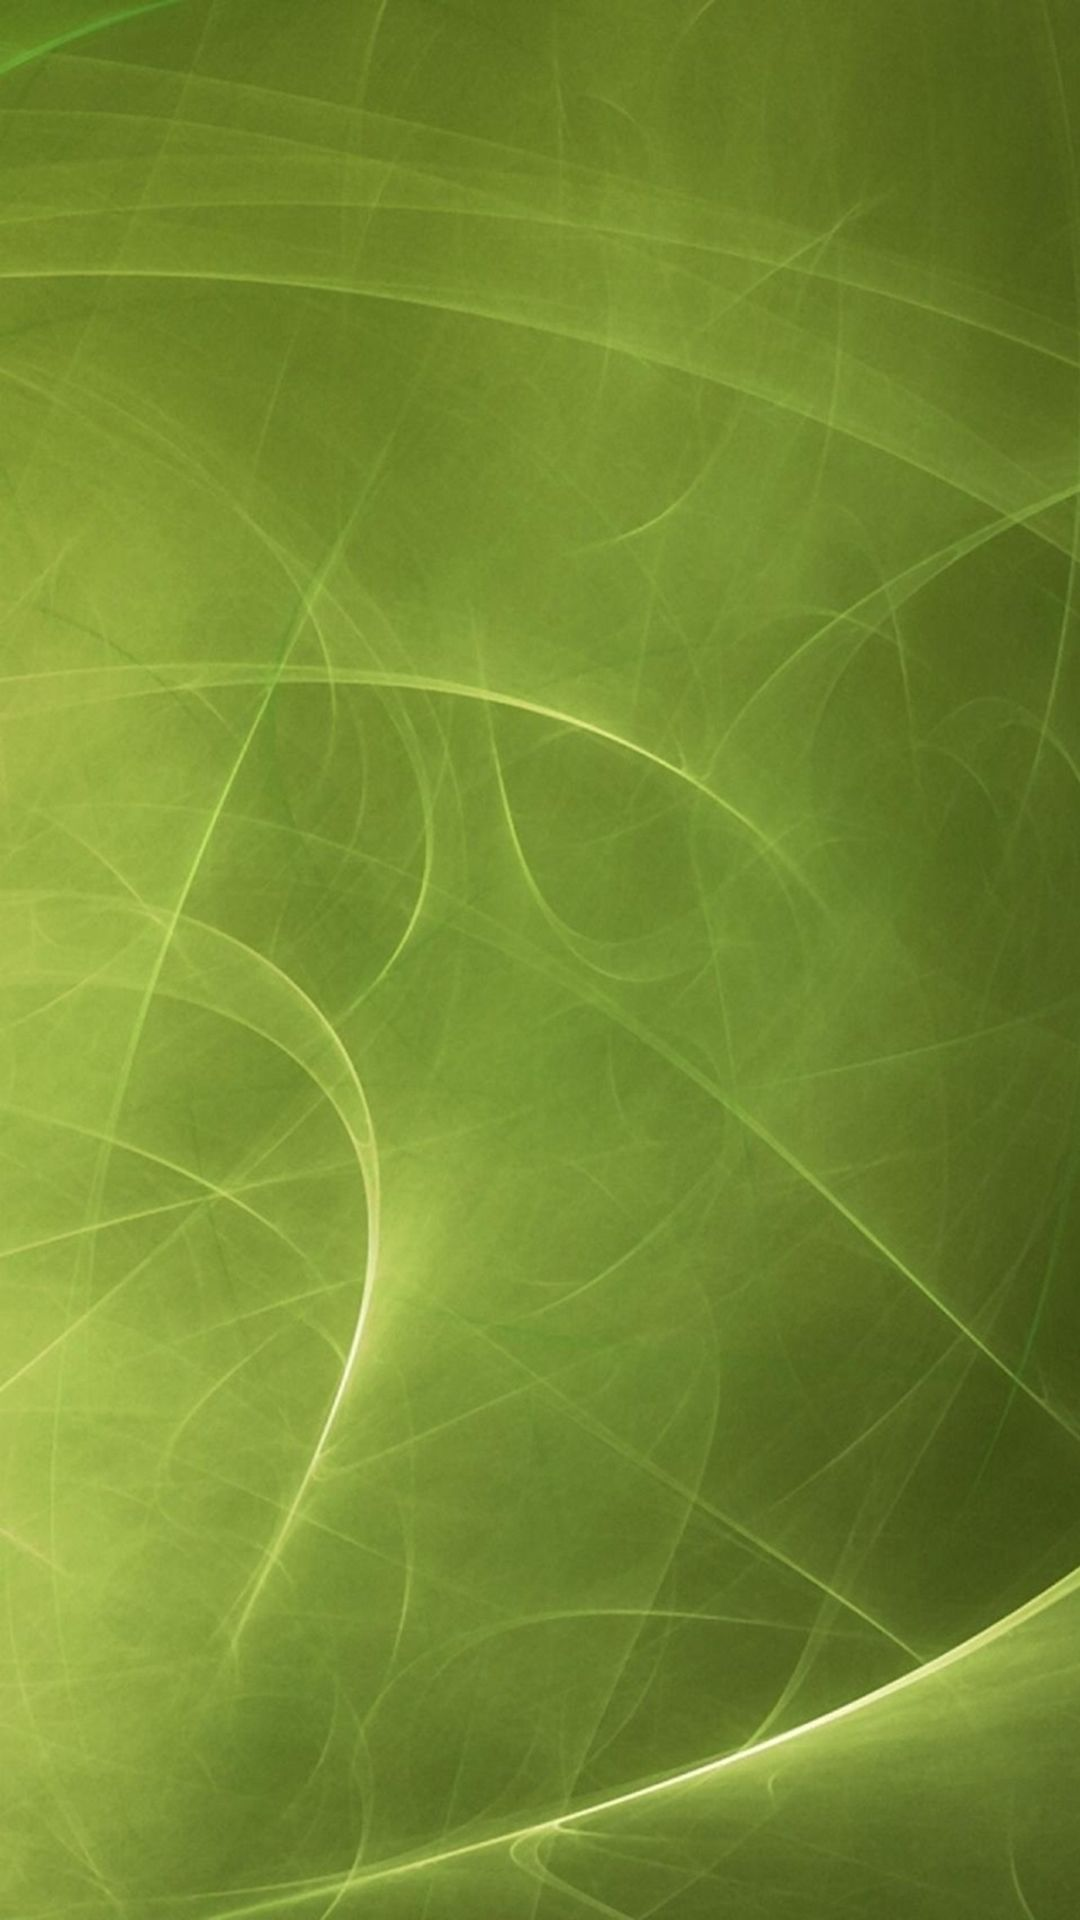 green silk swirl background iphone 6 wallpaper colors